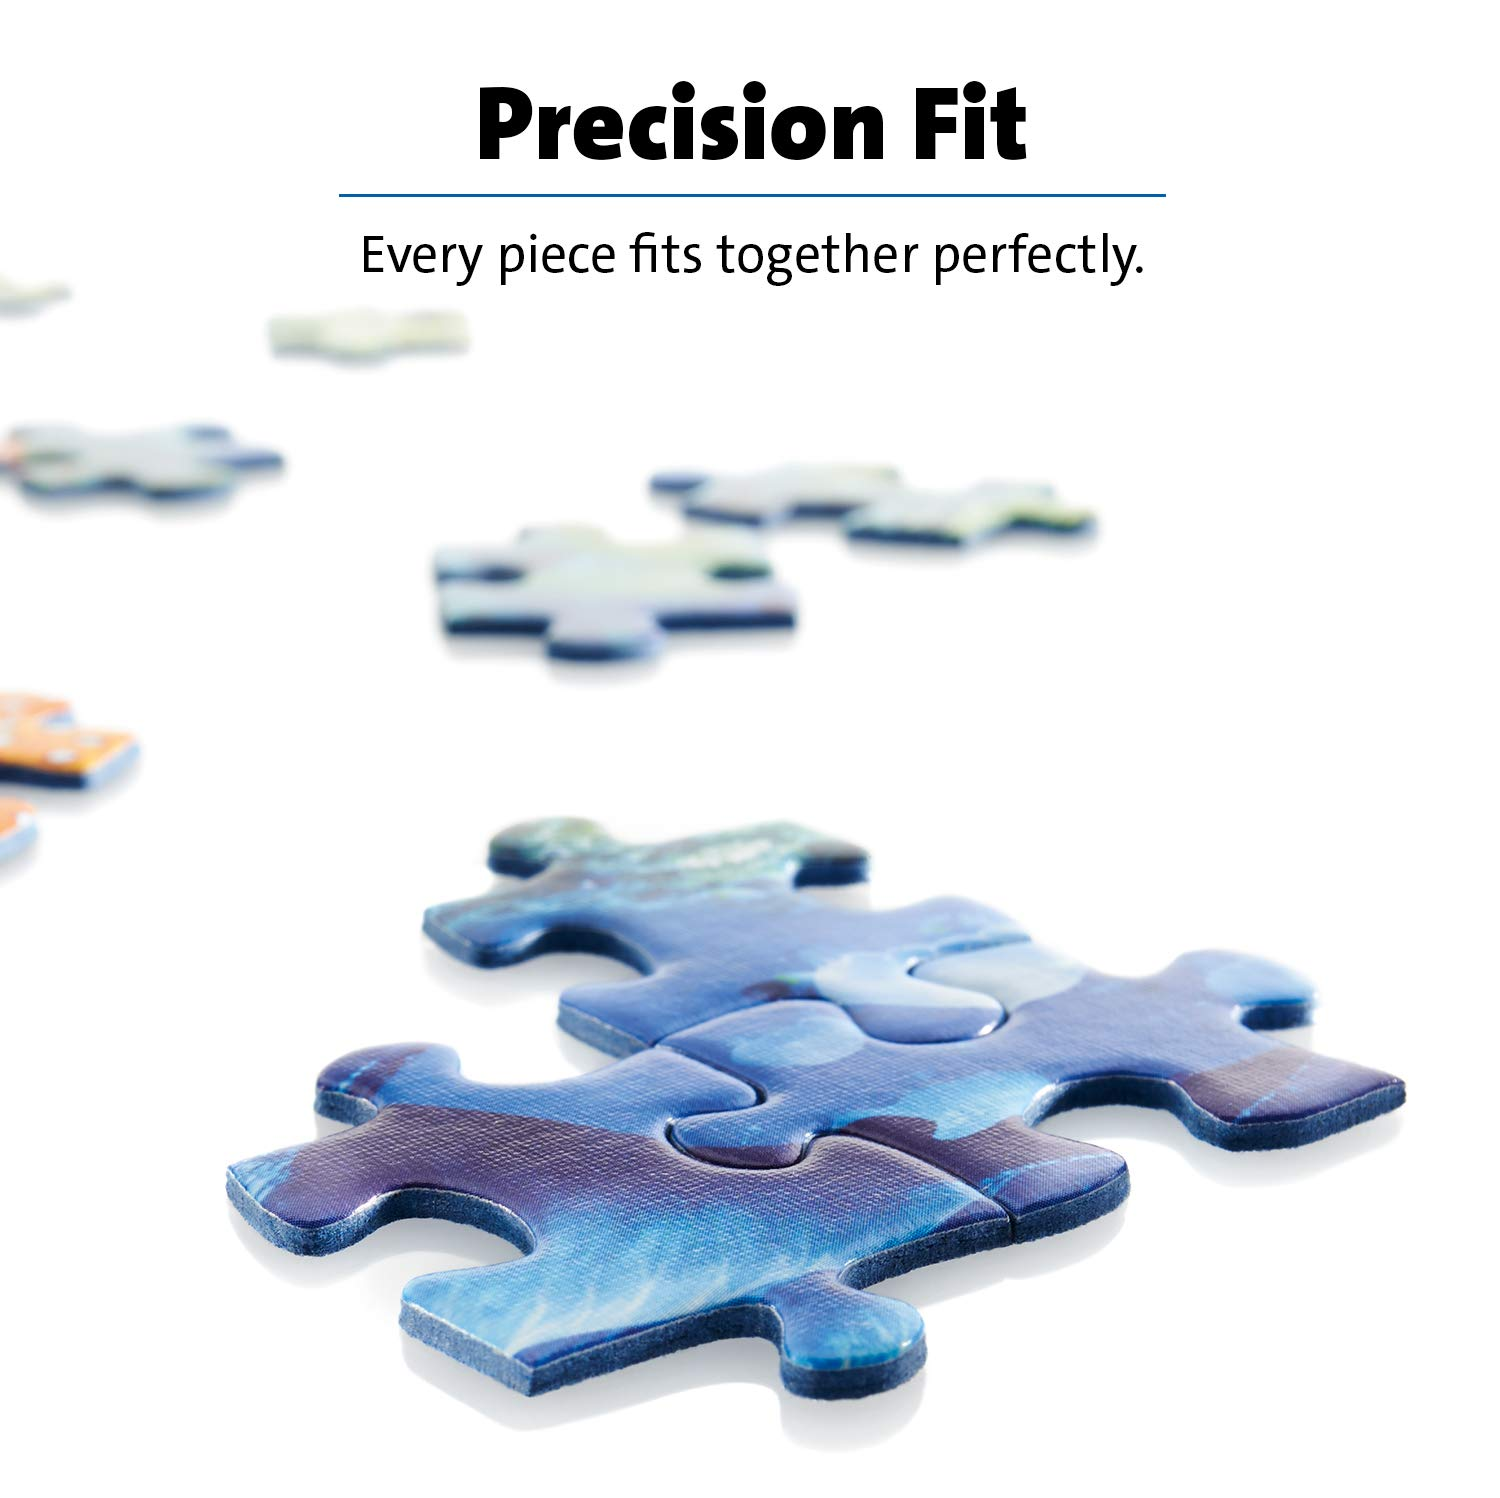 Softclick Technology Means Pieces Fit Together Perfectly 14223 Every Piece is Unique Ravensburger Garden Birds 500 Piece Jigsaw Puzzle for Adults